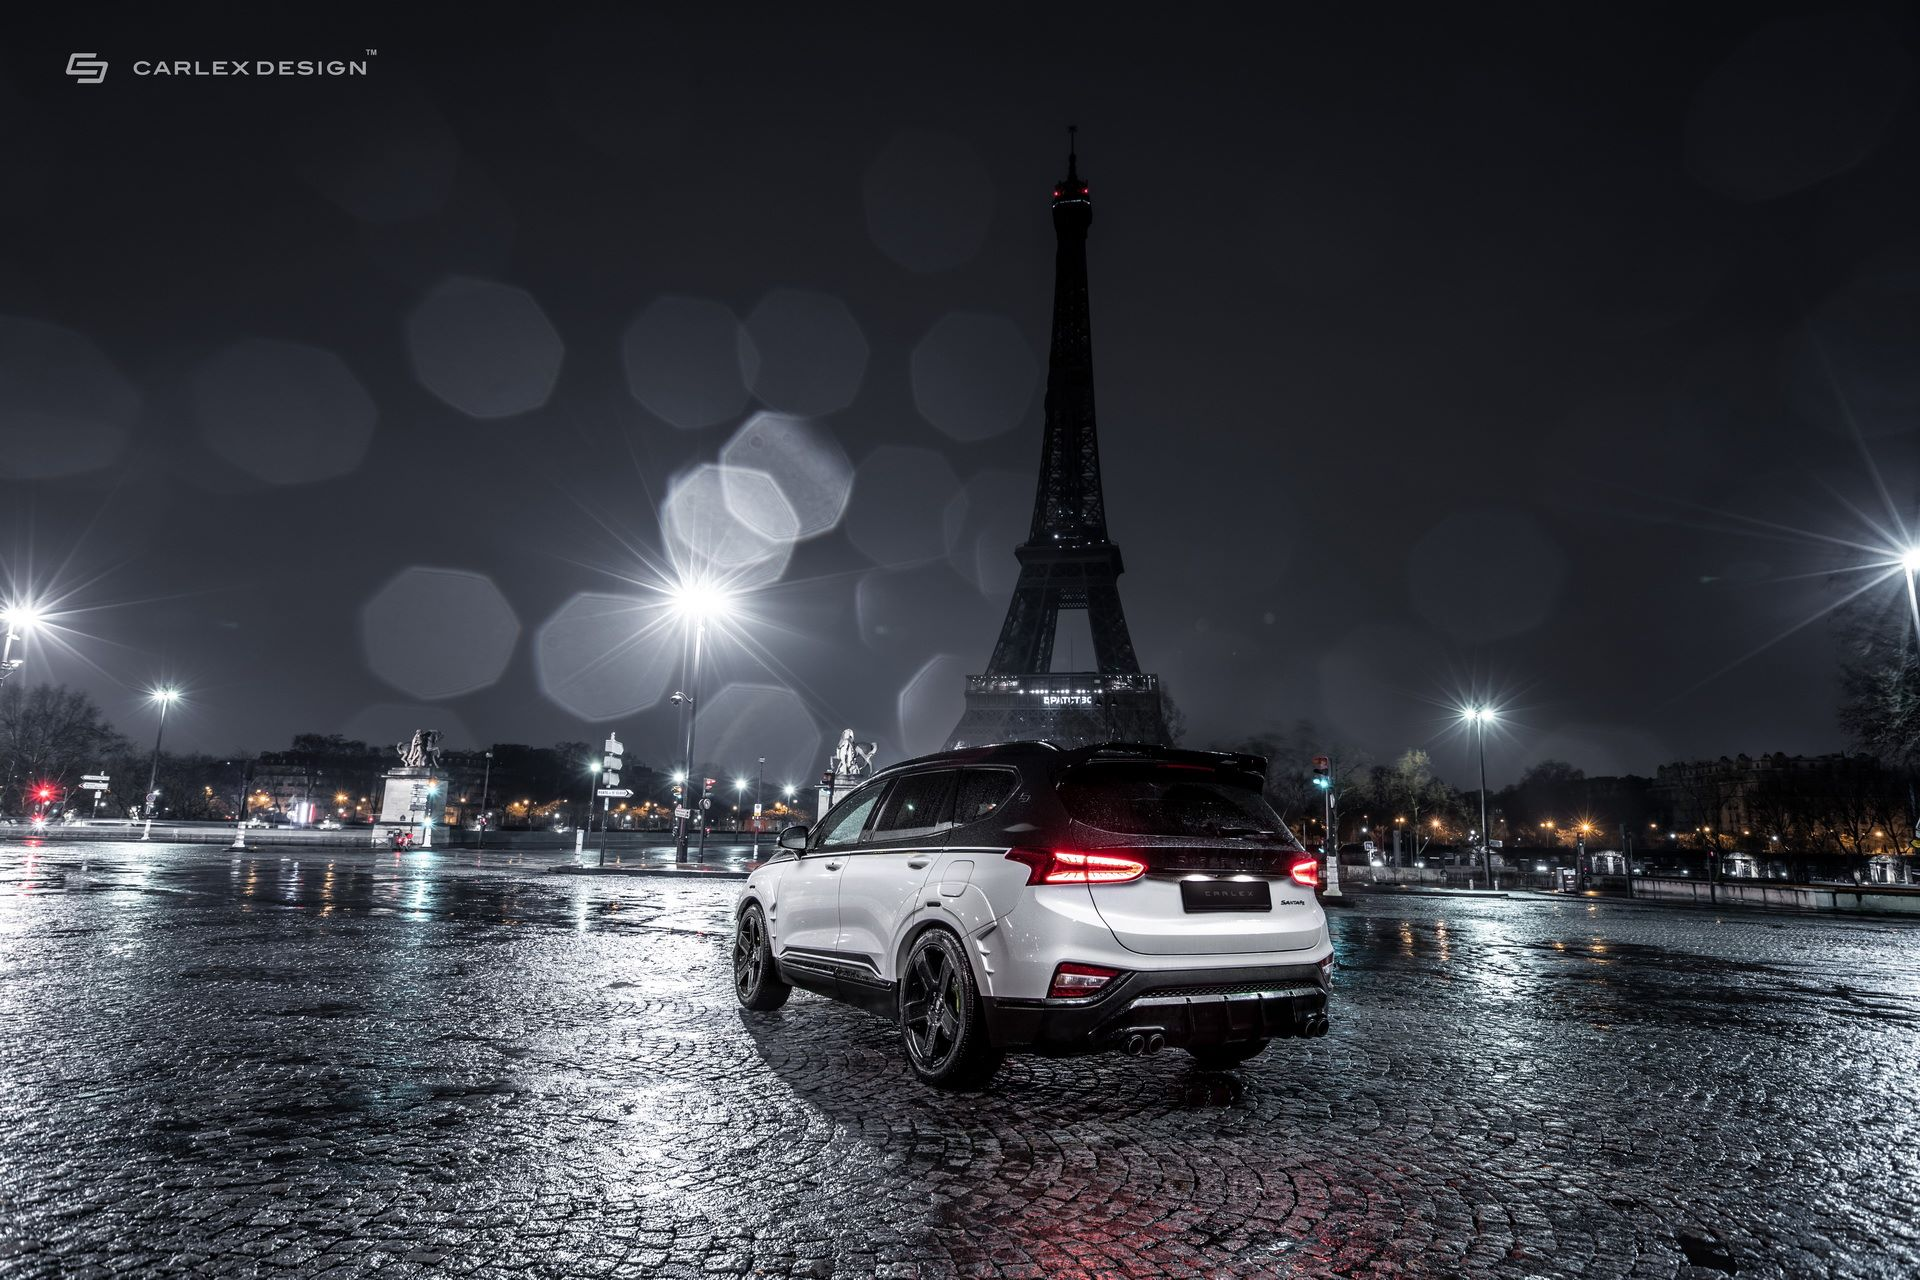 Hyundai-Santa-Fe-Urban-Edition-by-Carlex-Design-37